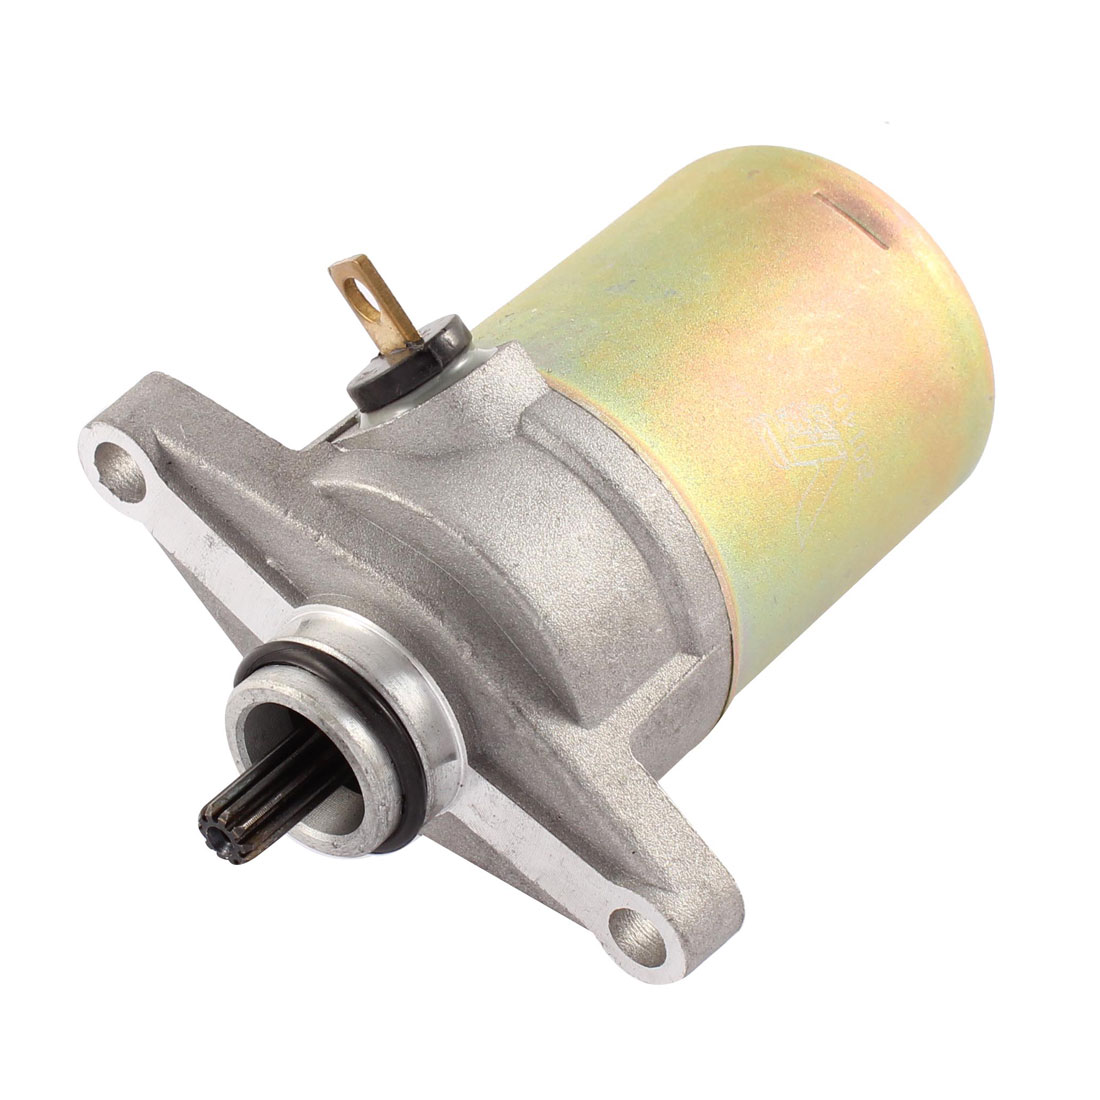 GY6 50 Bronze Tone Gray Motorcycle Scooter Engine Starting Starter Motor